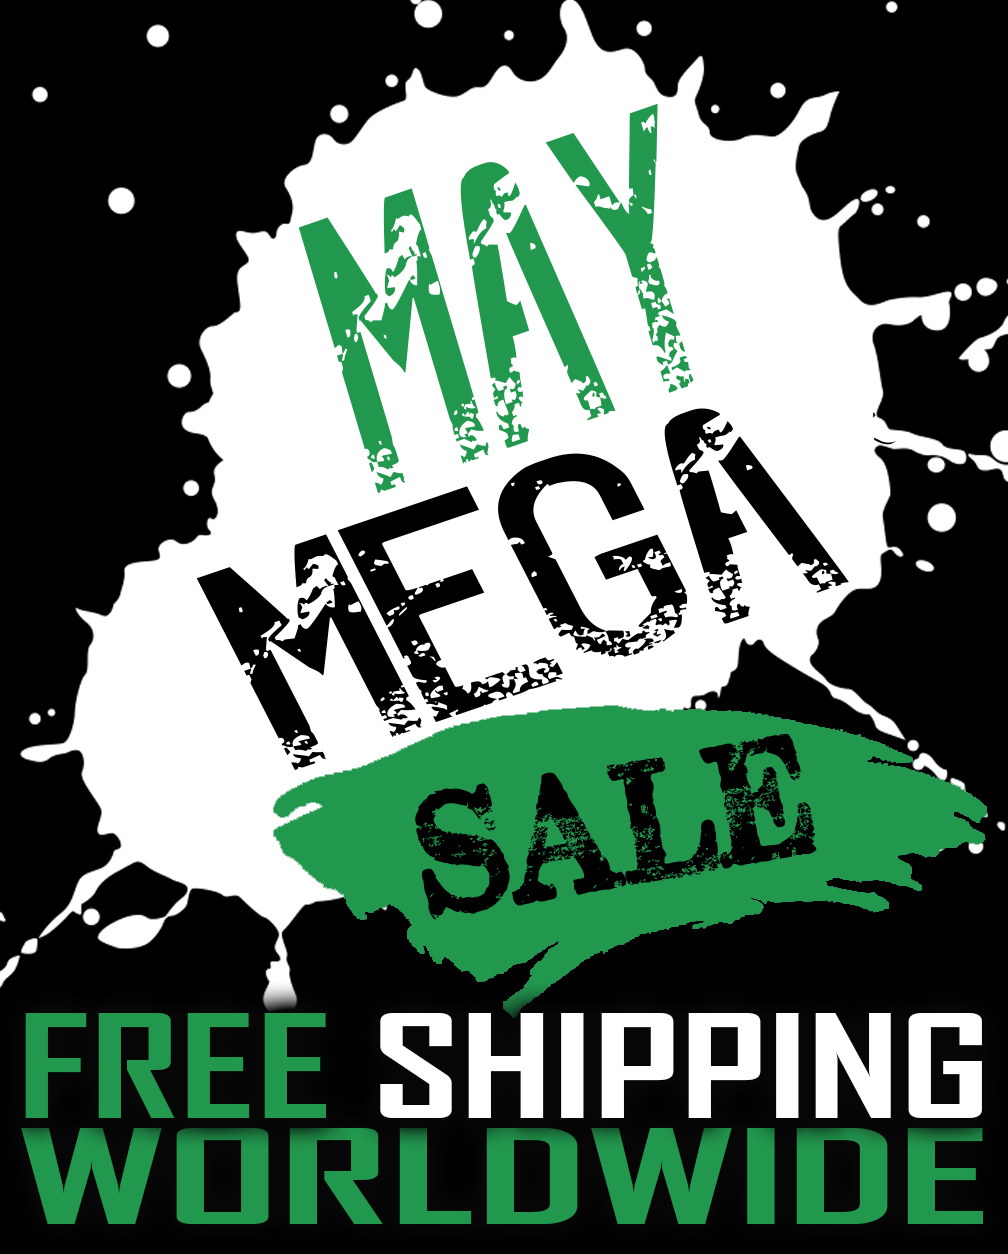 may-mega-sale-free-worldwide-shipping-new.jpg